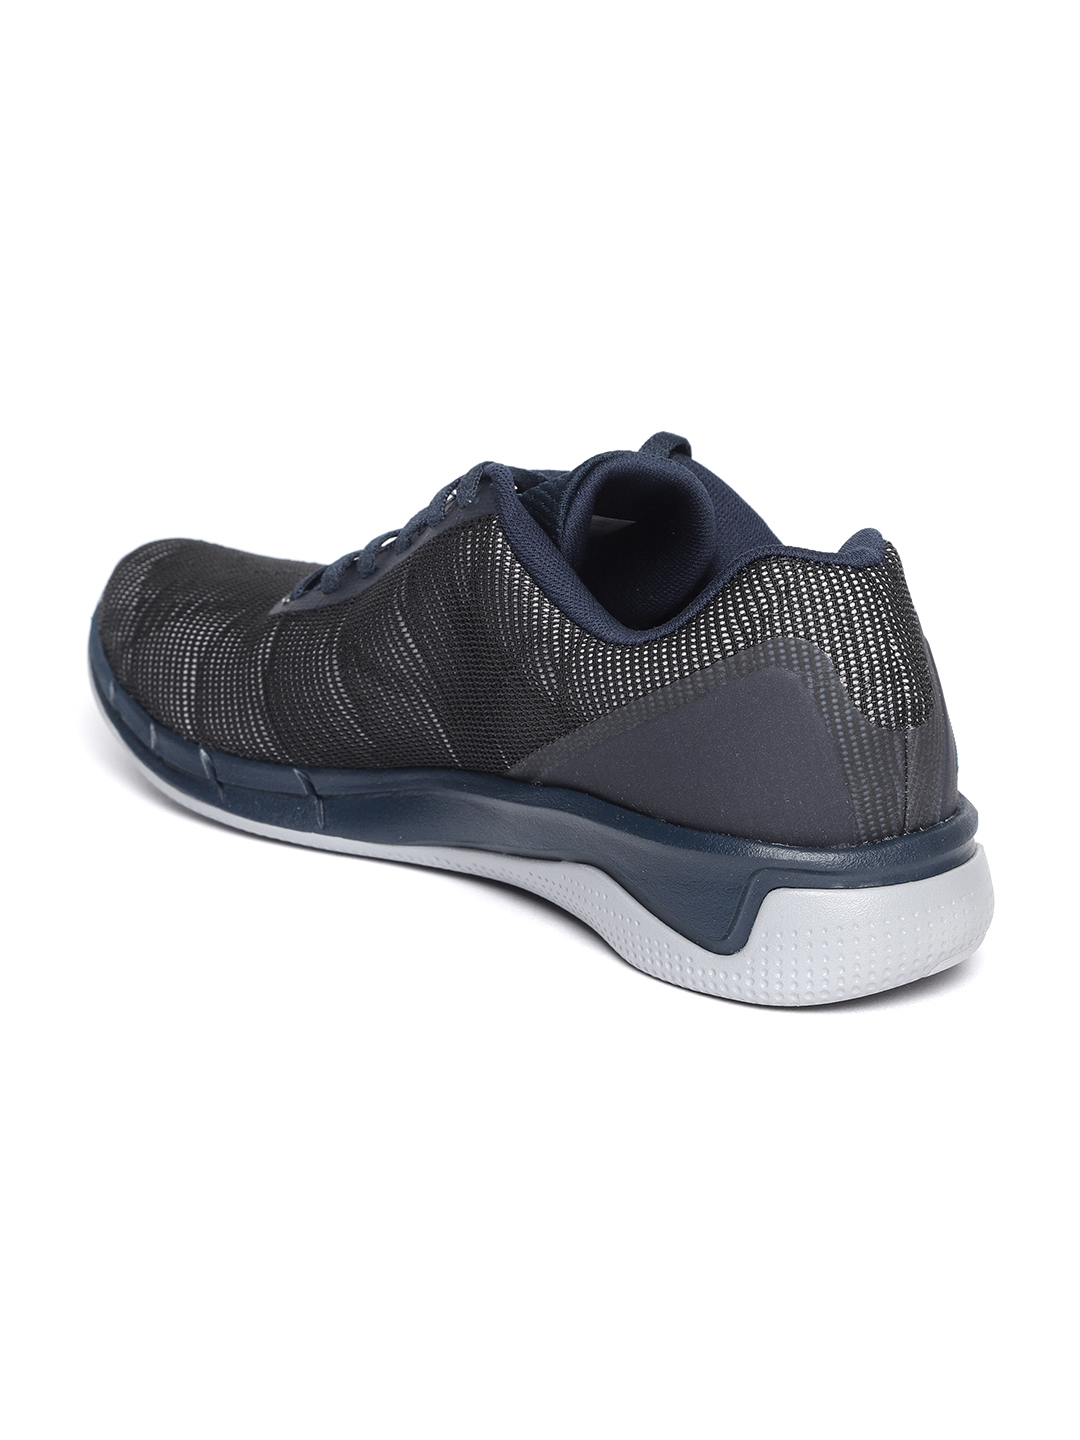 be4add92c82dd0 Buy Reebok Men Black   Navy Blue Fast Flexweave Running Shoes ...